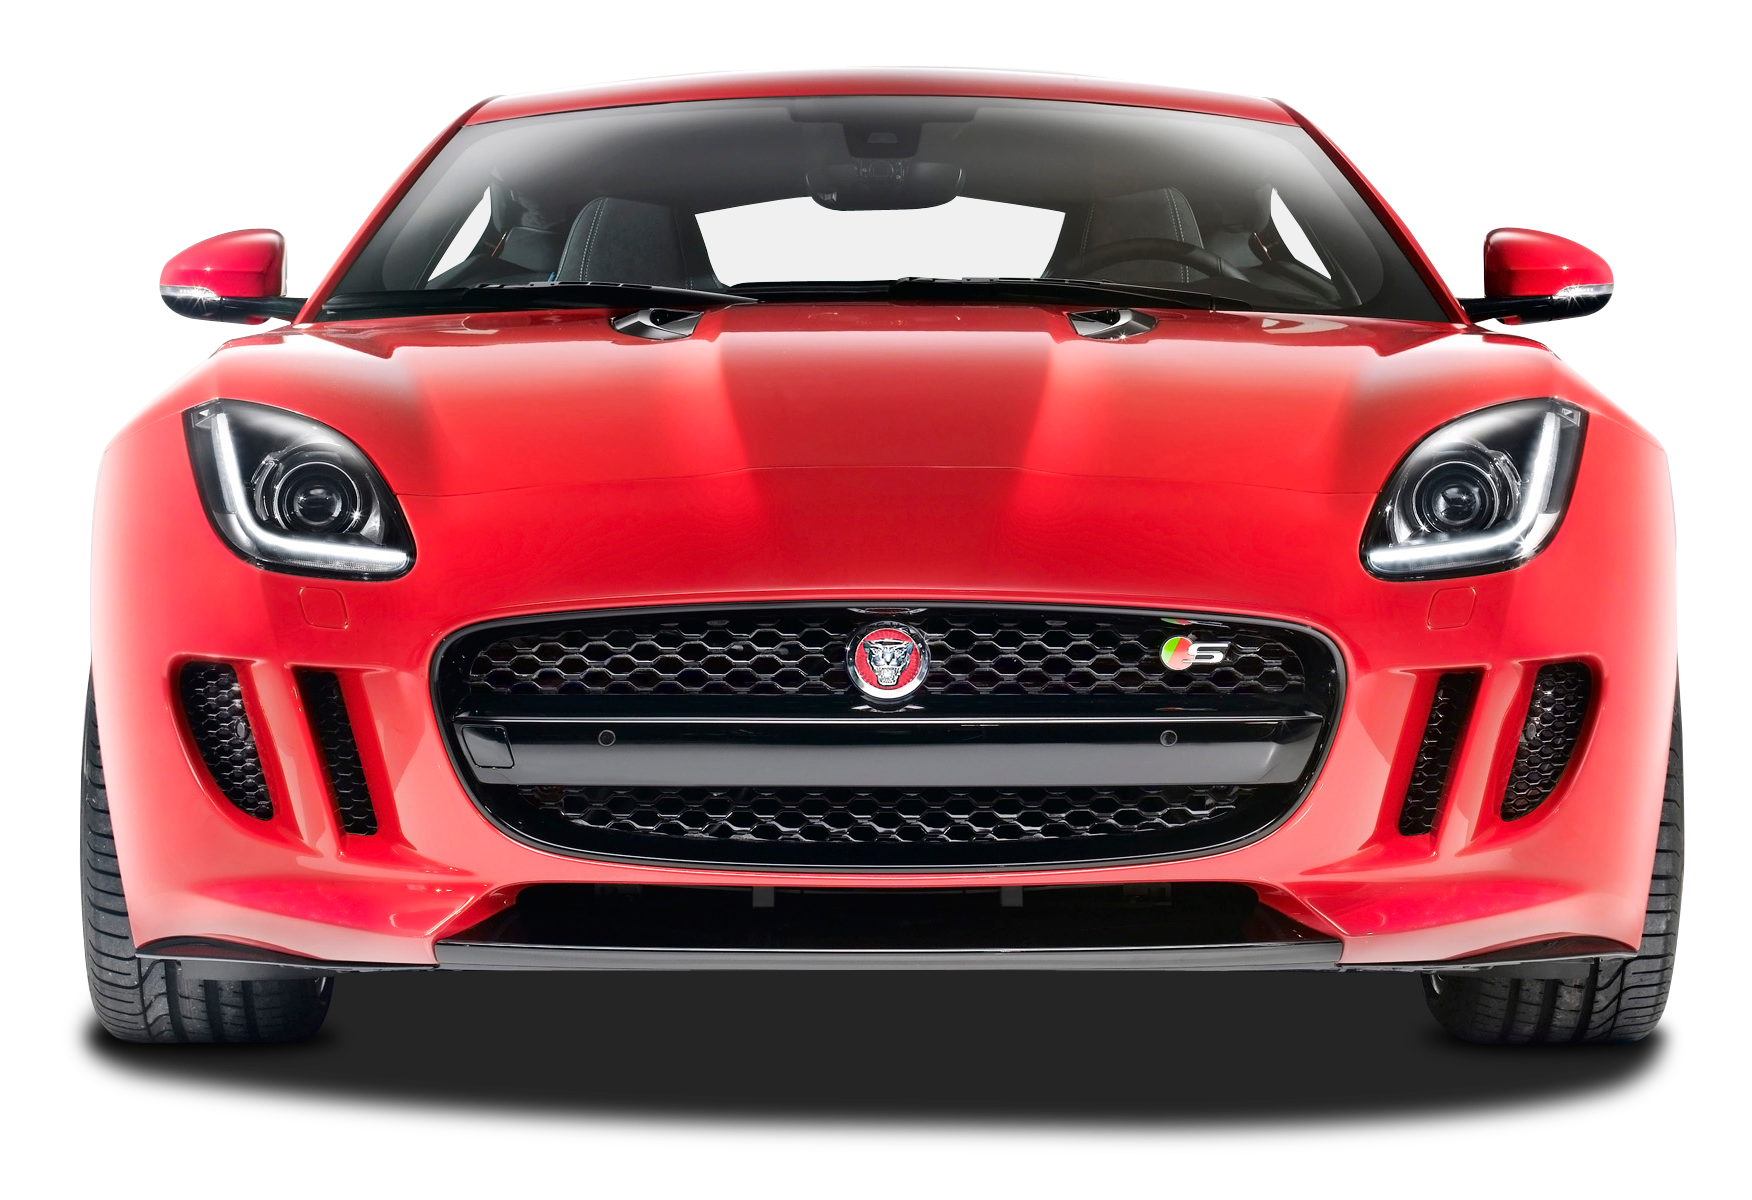 Front View Of Jaguar F Type R Car Png Image Purepng Free